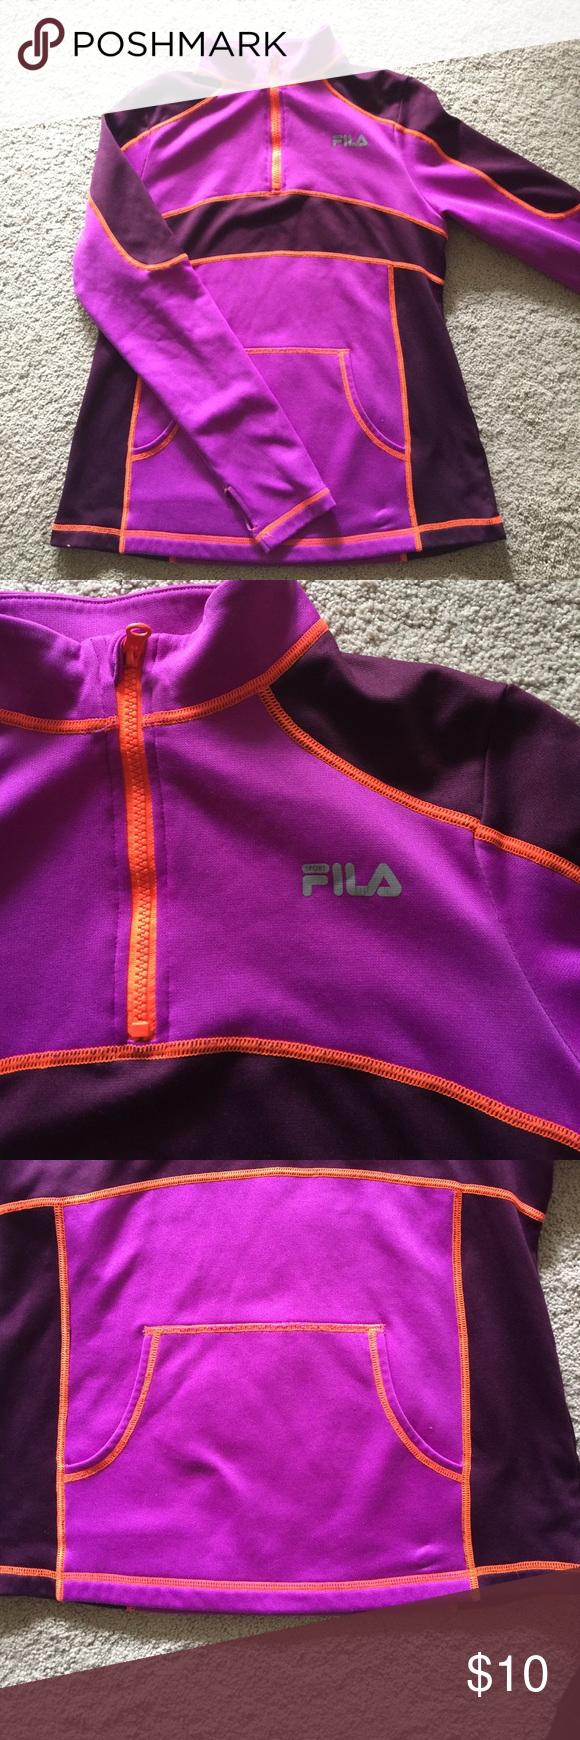 fila 1 4 zip. fila 1/4 zip athletic top purple, maroon and orange work out / 1 4